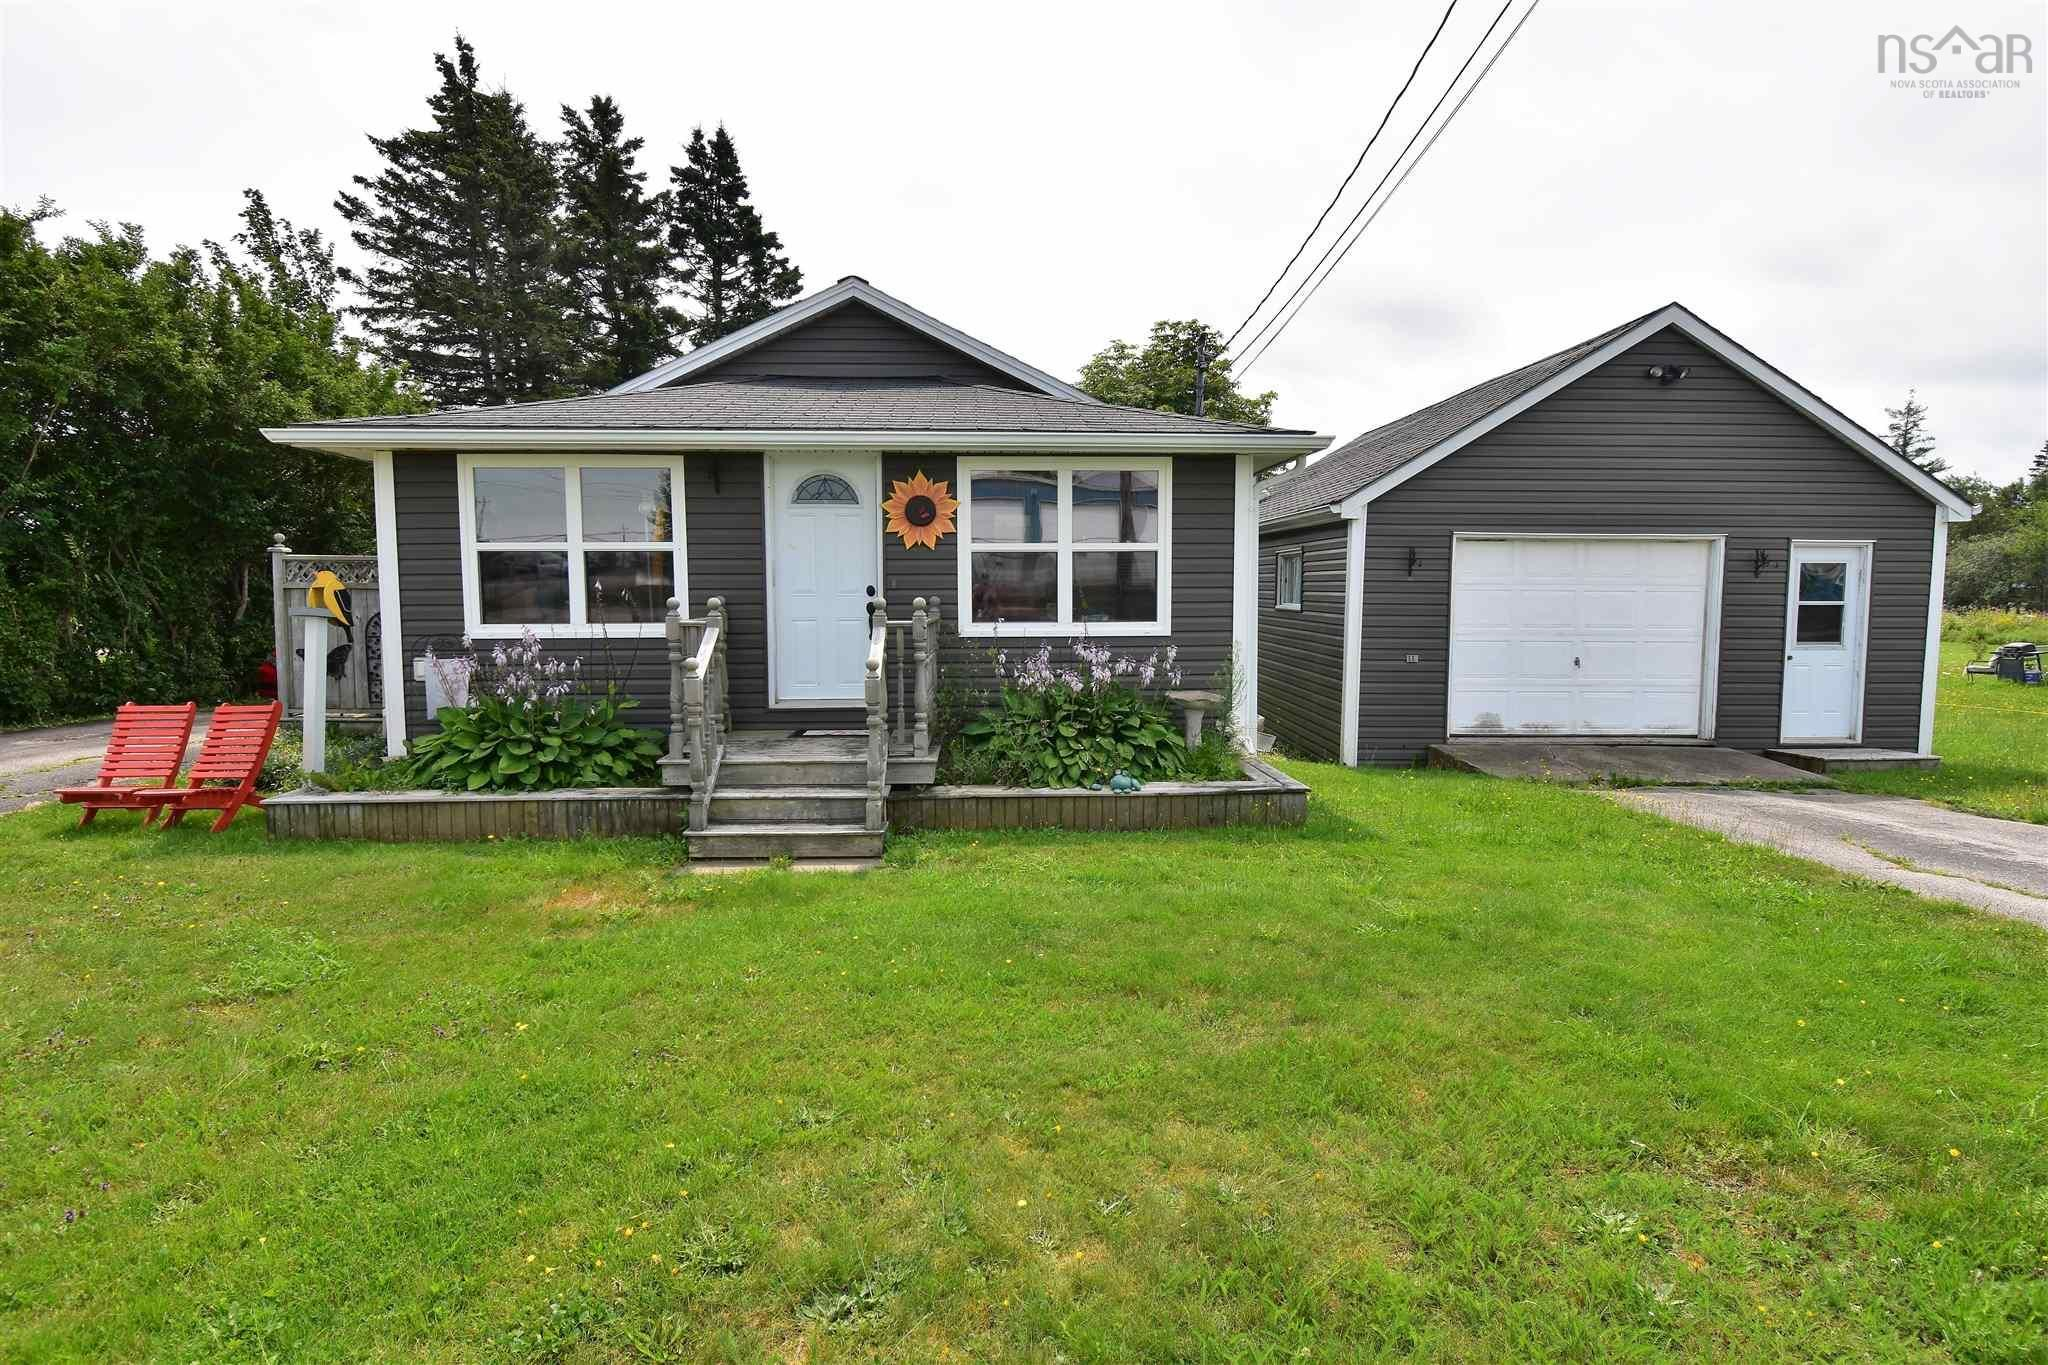 Main Photo: 57 SYDNEY Street in Digby: 401-Digby County Residential for sale (Annapolis Valley)  : MLS®# 202121302